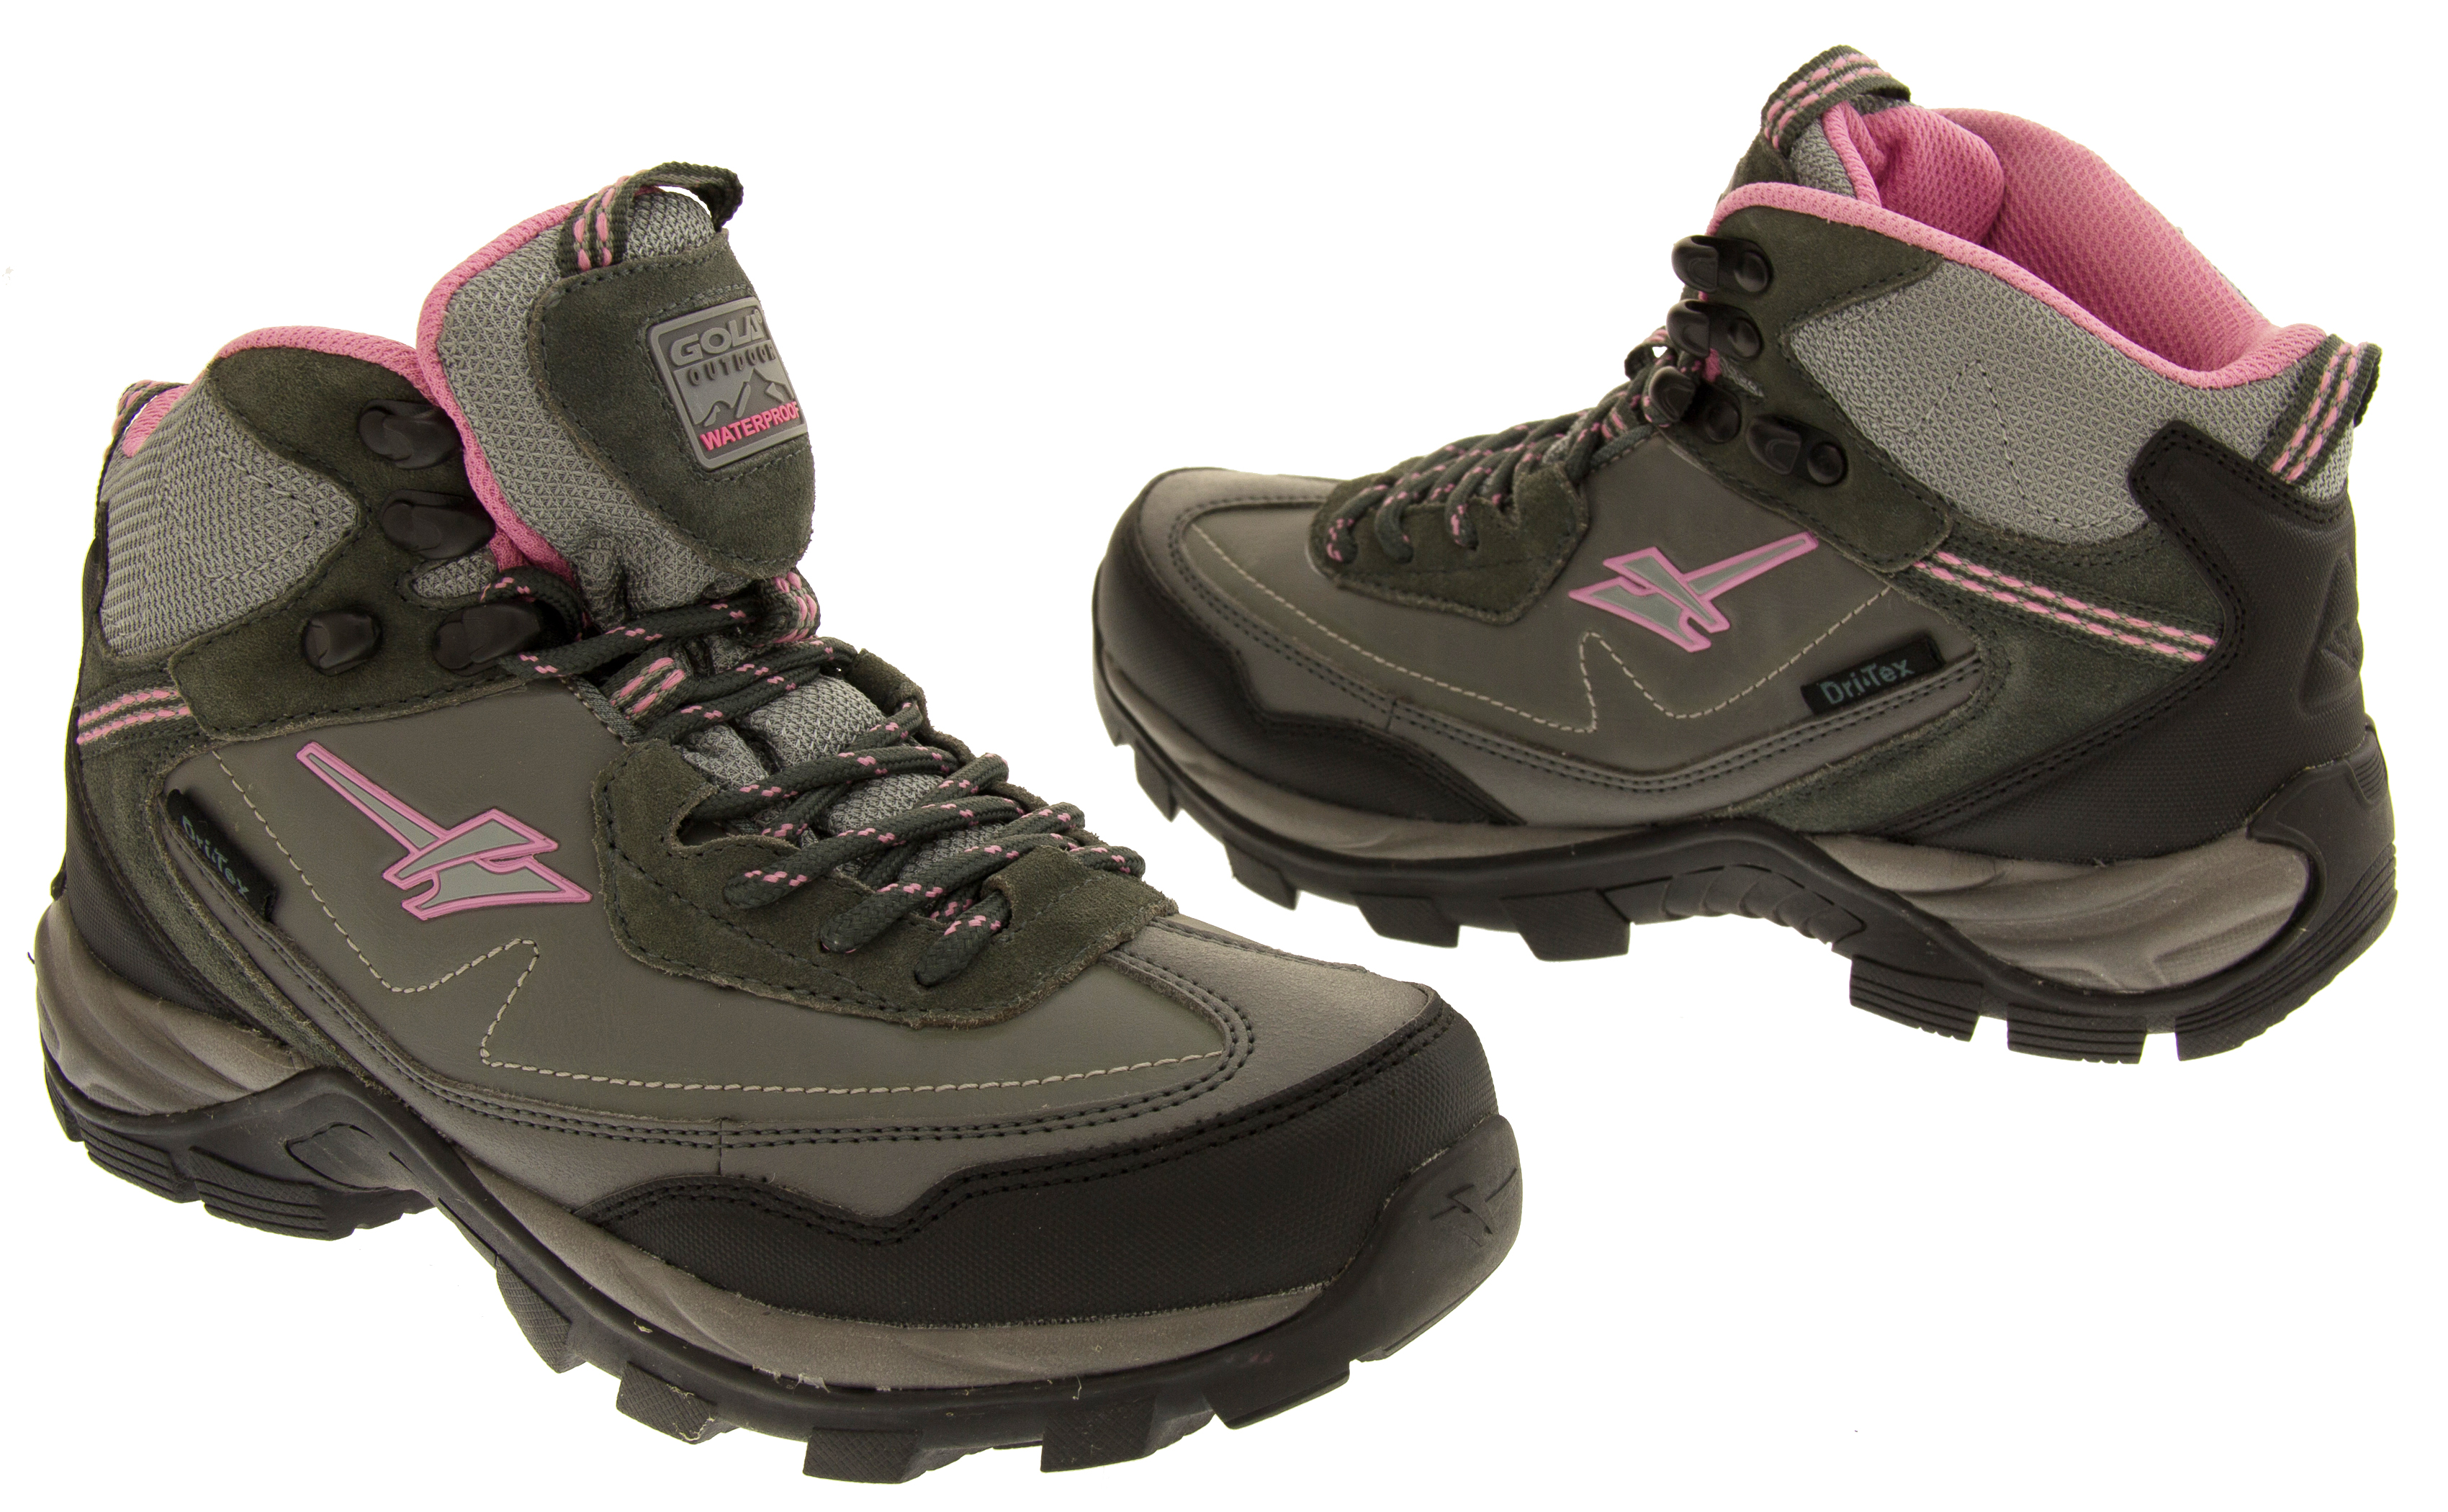 gola waterproof hiking boots womens walking trail